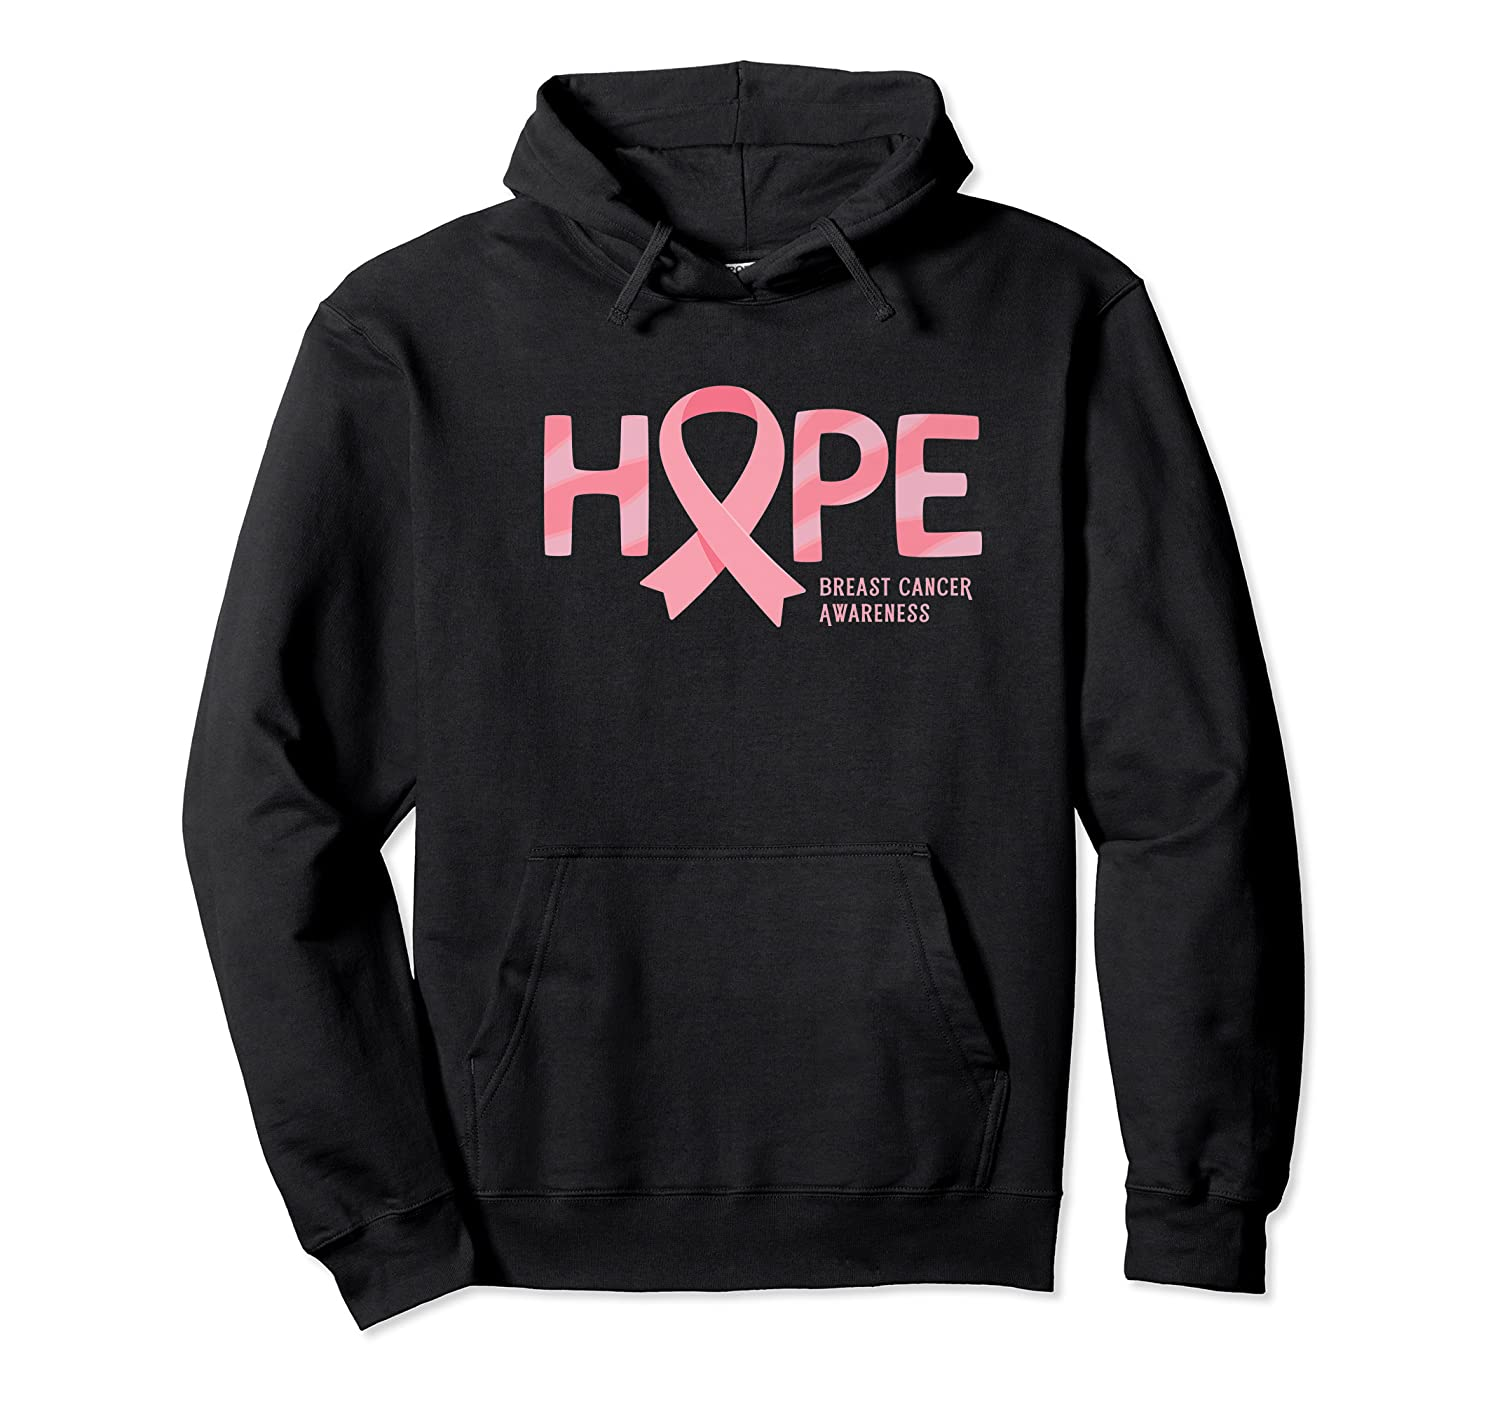 Have Hope Breast Cancer Awareness Month Support Team Premium T Shirt Unisex Pullover Hoodie